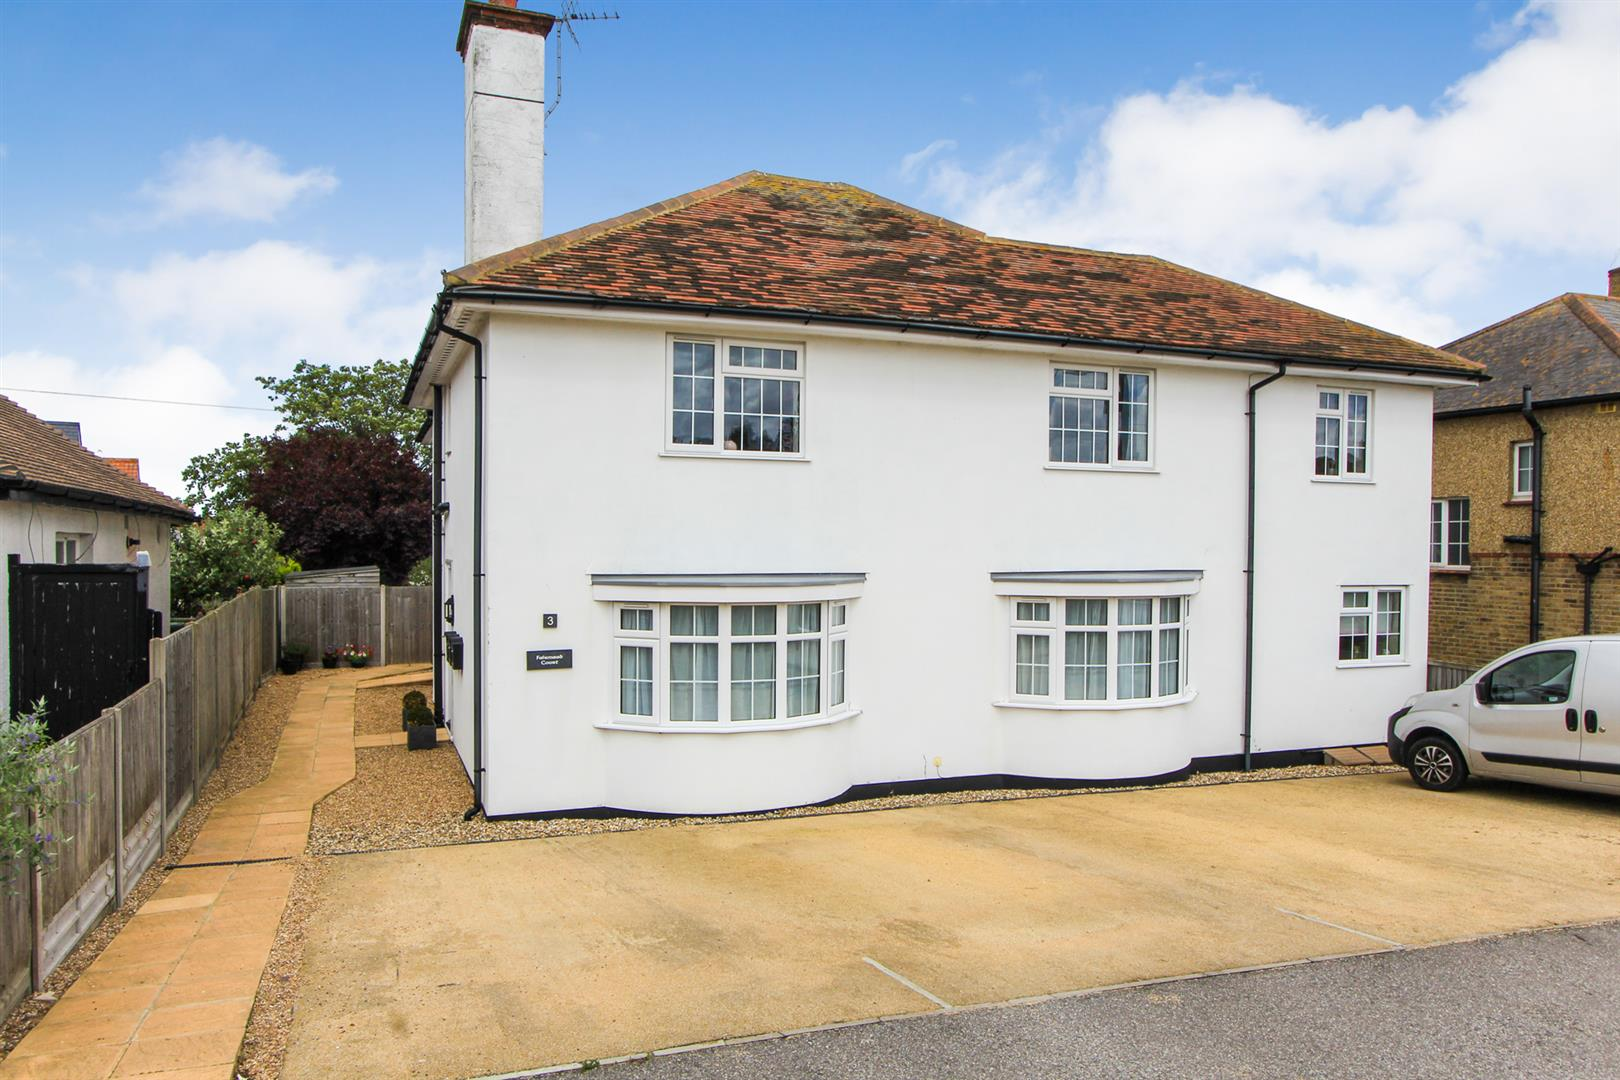 2 Bedrooms Apartment Flat for sale in Bridgefield Road, Tankerton, Whitstable